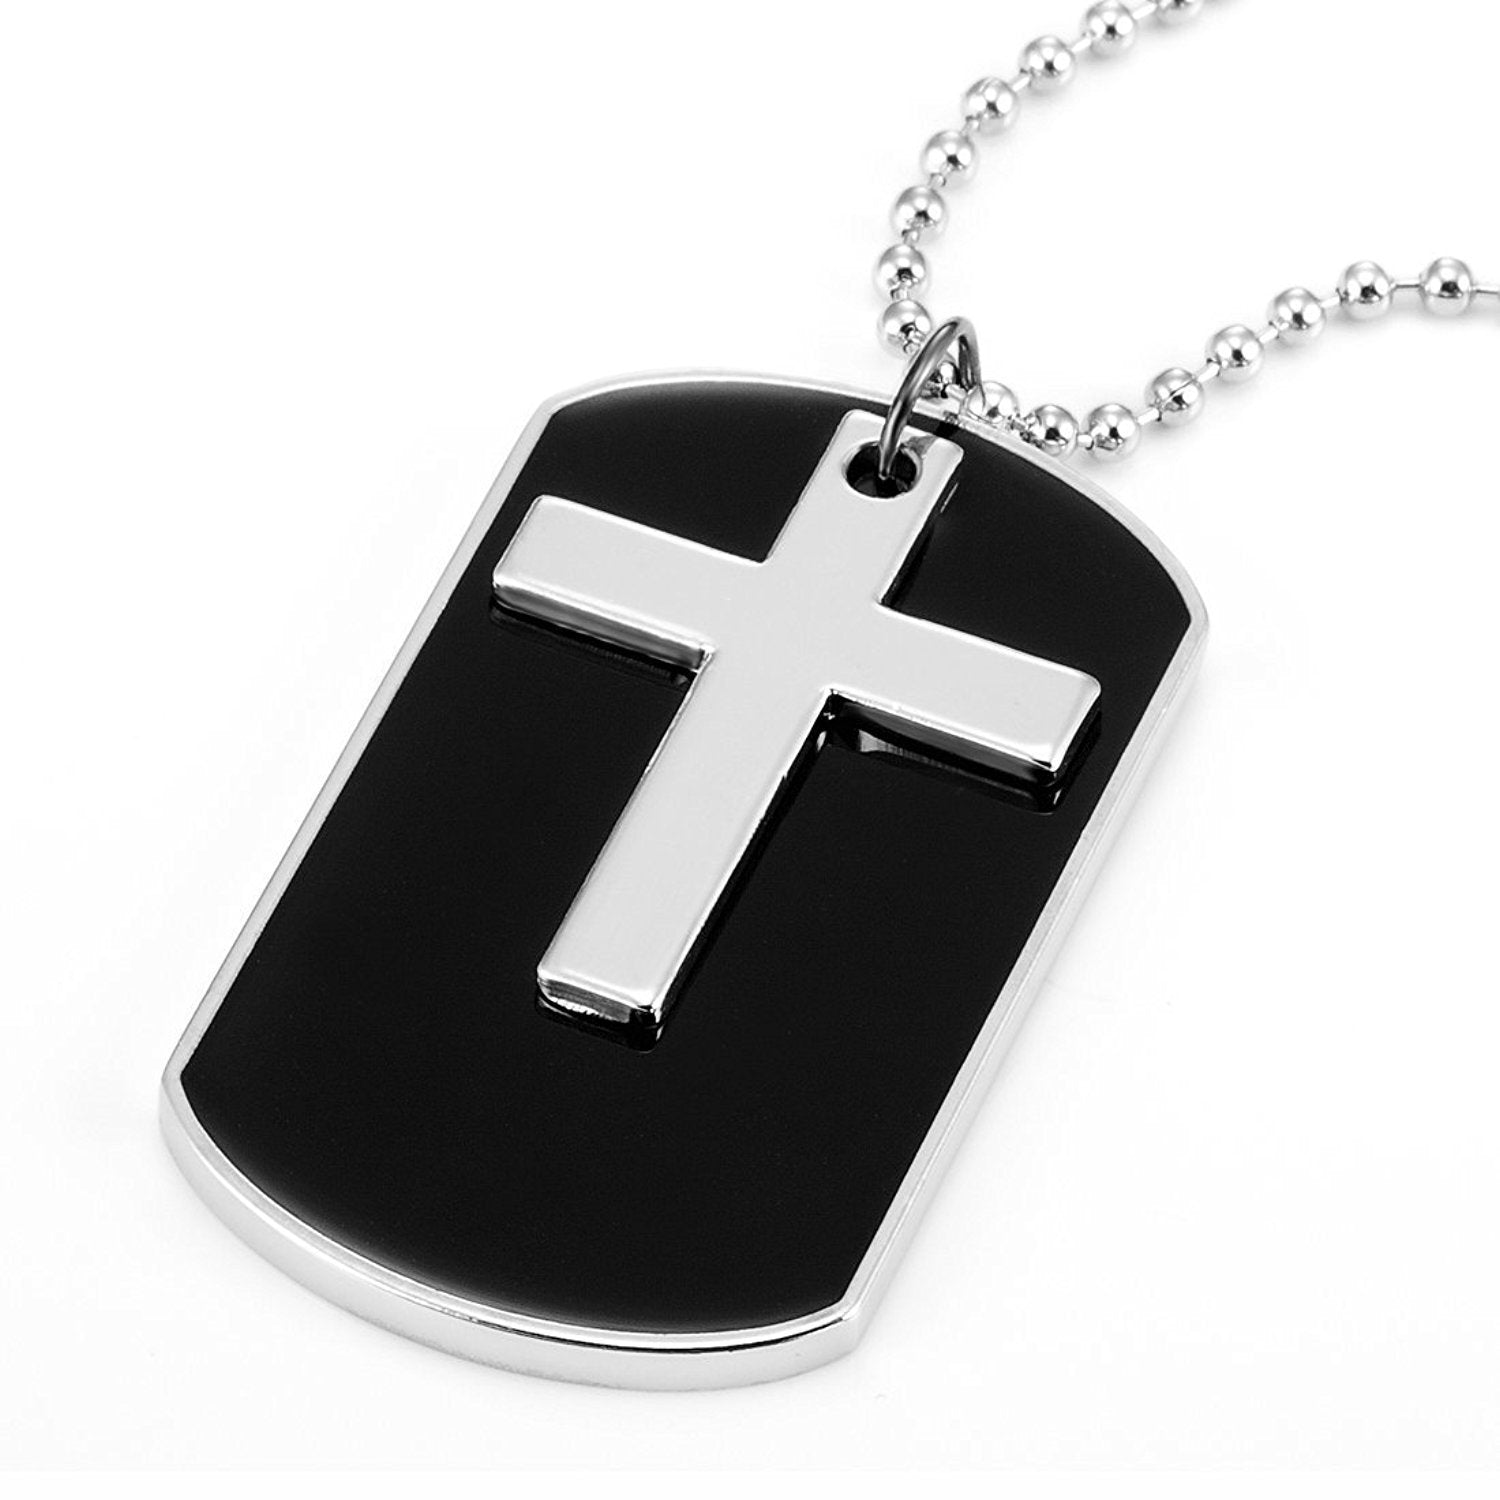 "Army Cross Dog Tag Pendant Necklace 30"" Adjustable Chain - Black & Silver"